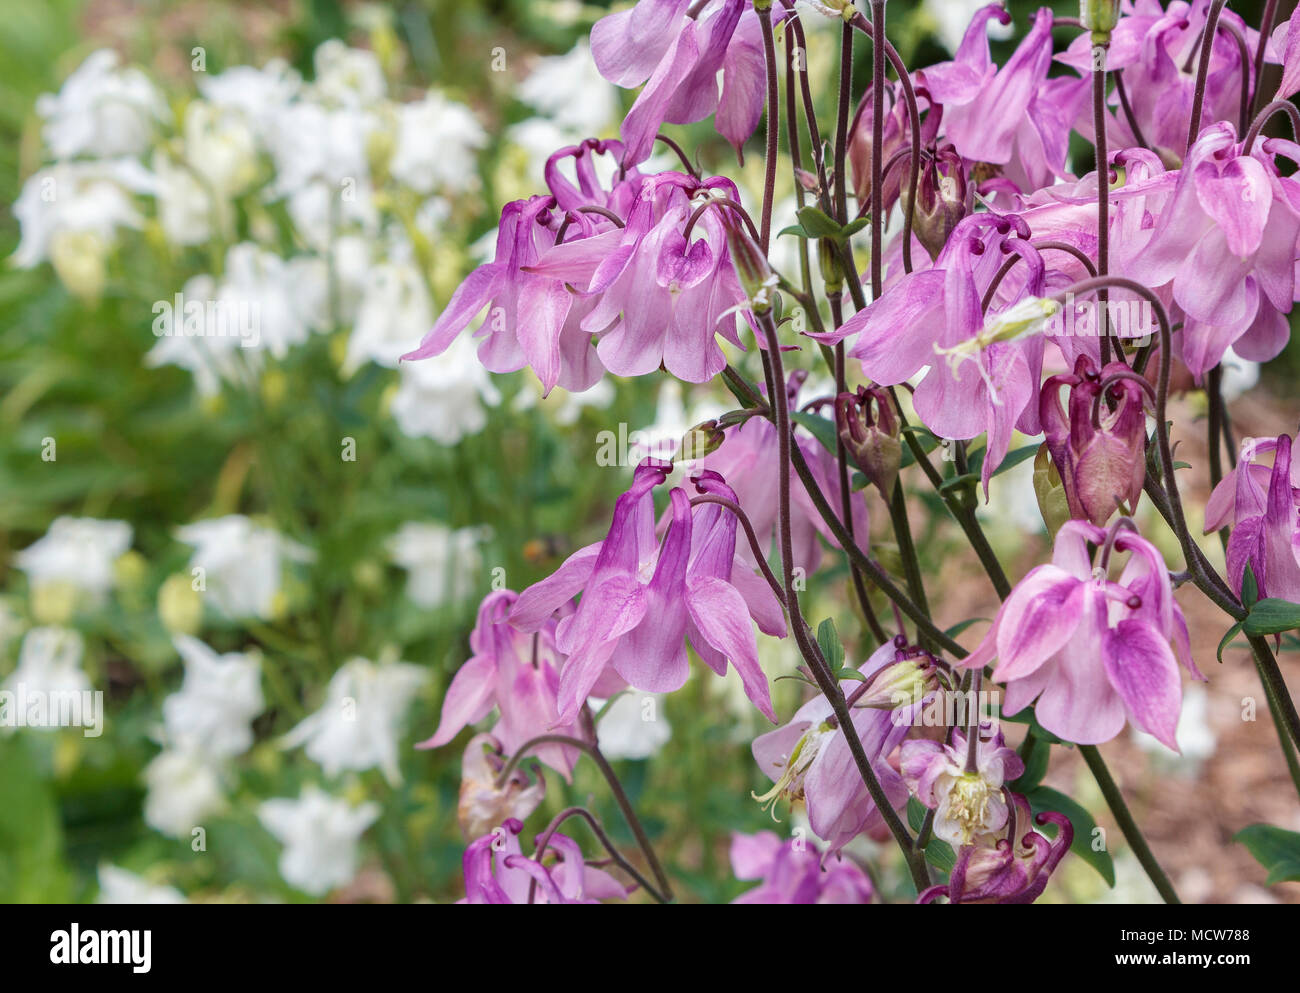 Bright Pink Columbine Flowers With Long Nectar Spurs Are Seen